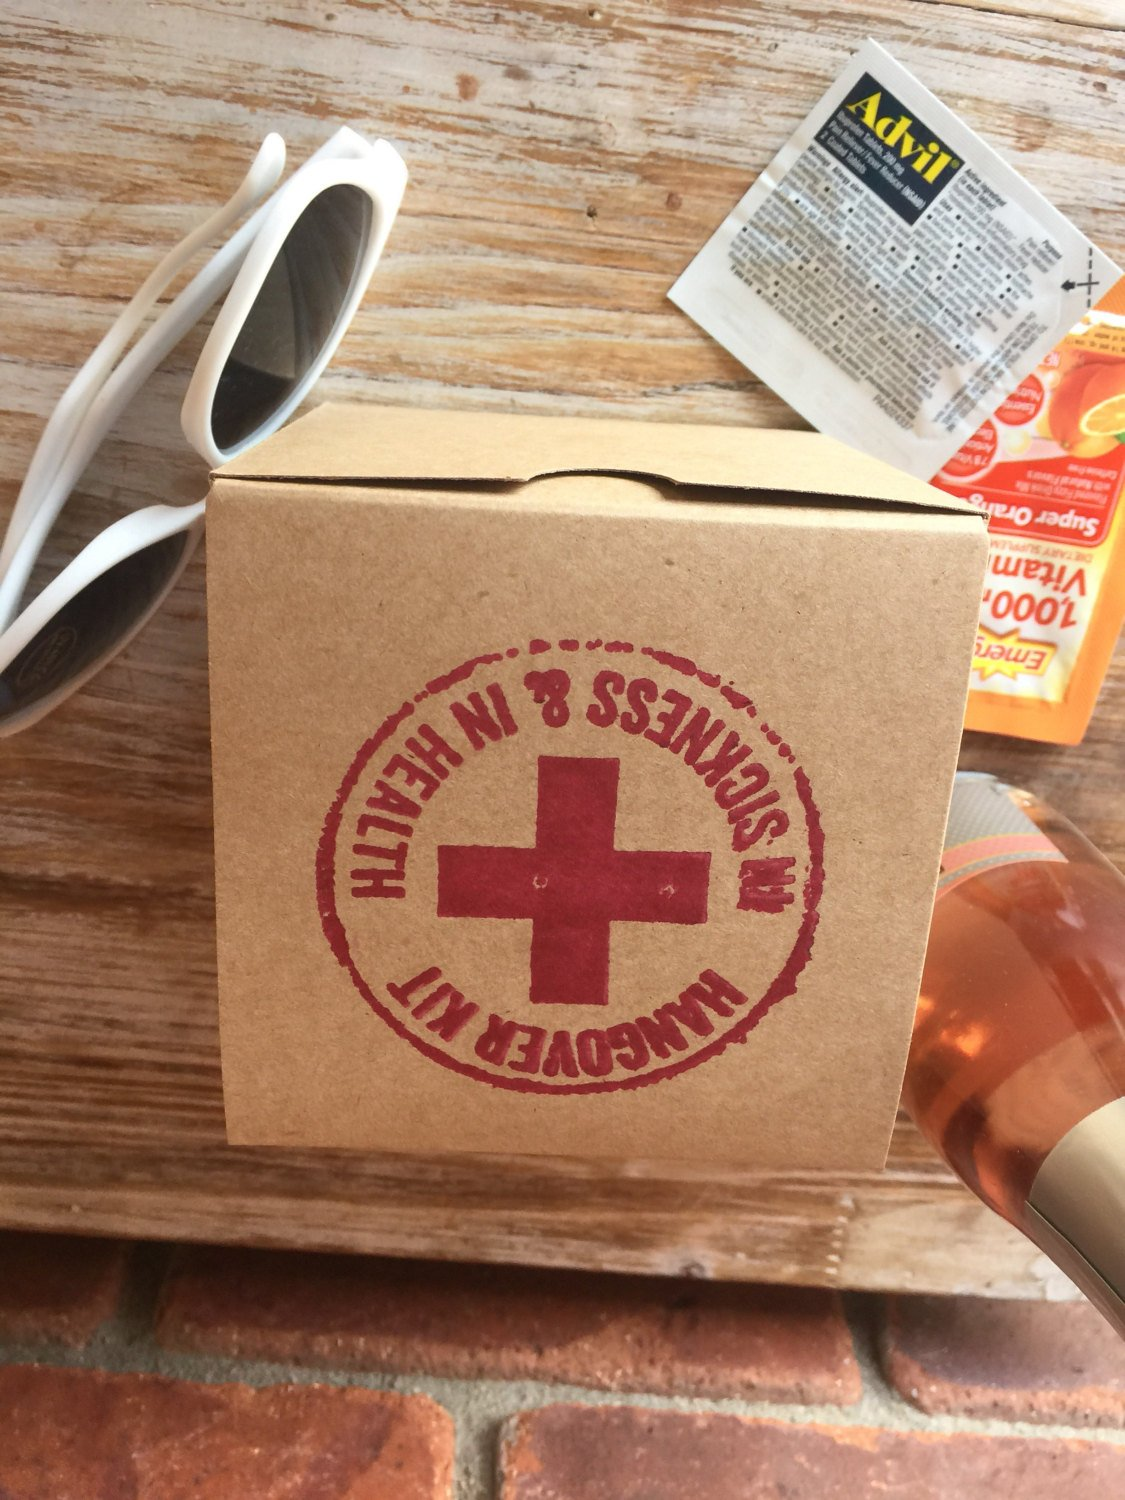 10 Hangover Kit Boxes, 4x4x4, Hangover Recovery Kit, Wedding Hangover Kit, Hangover Survival Kit, Bachelorette Party